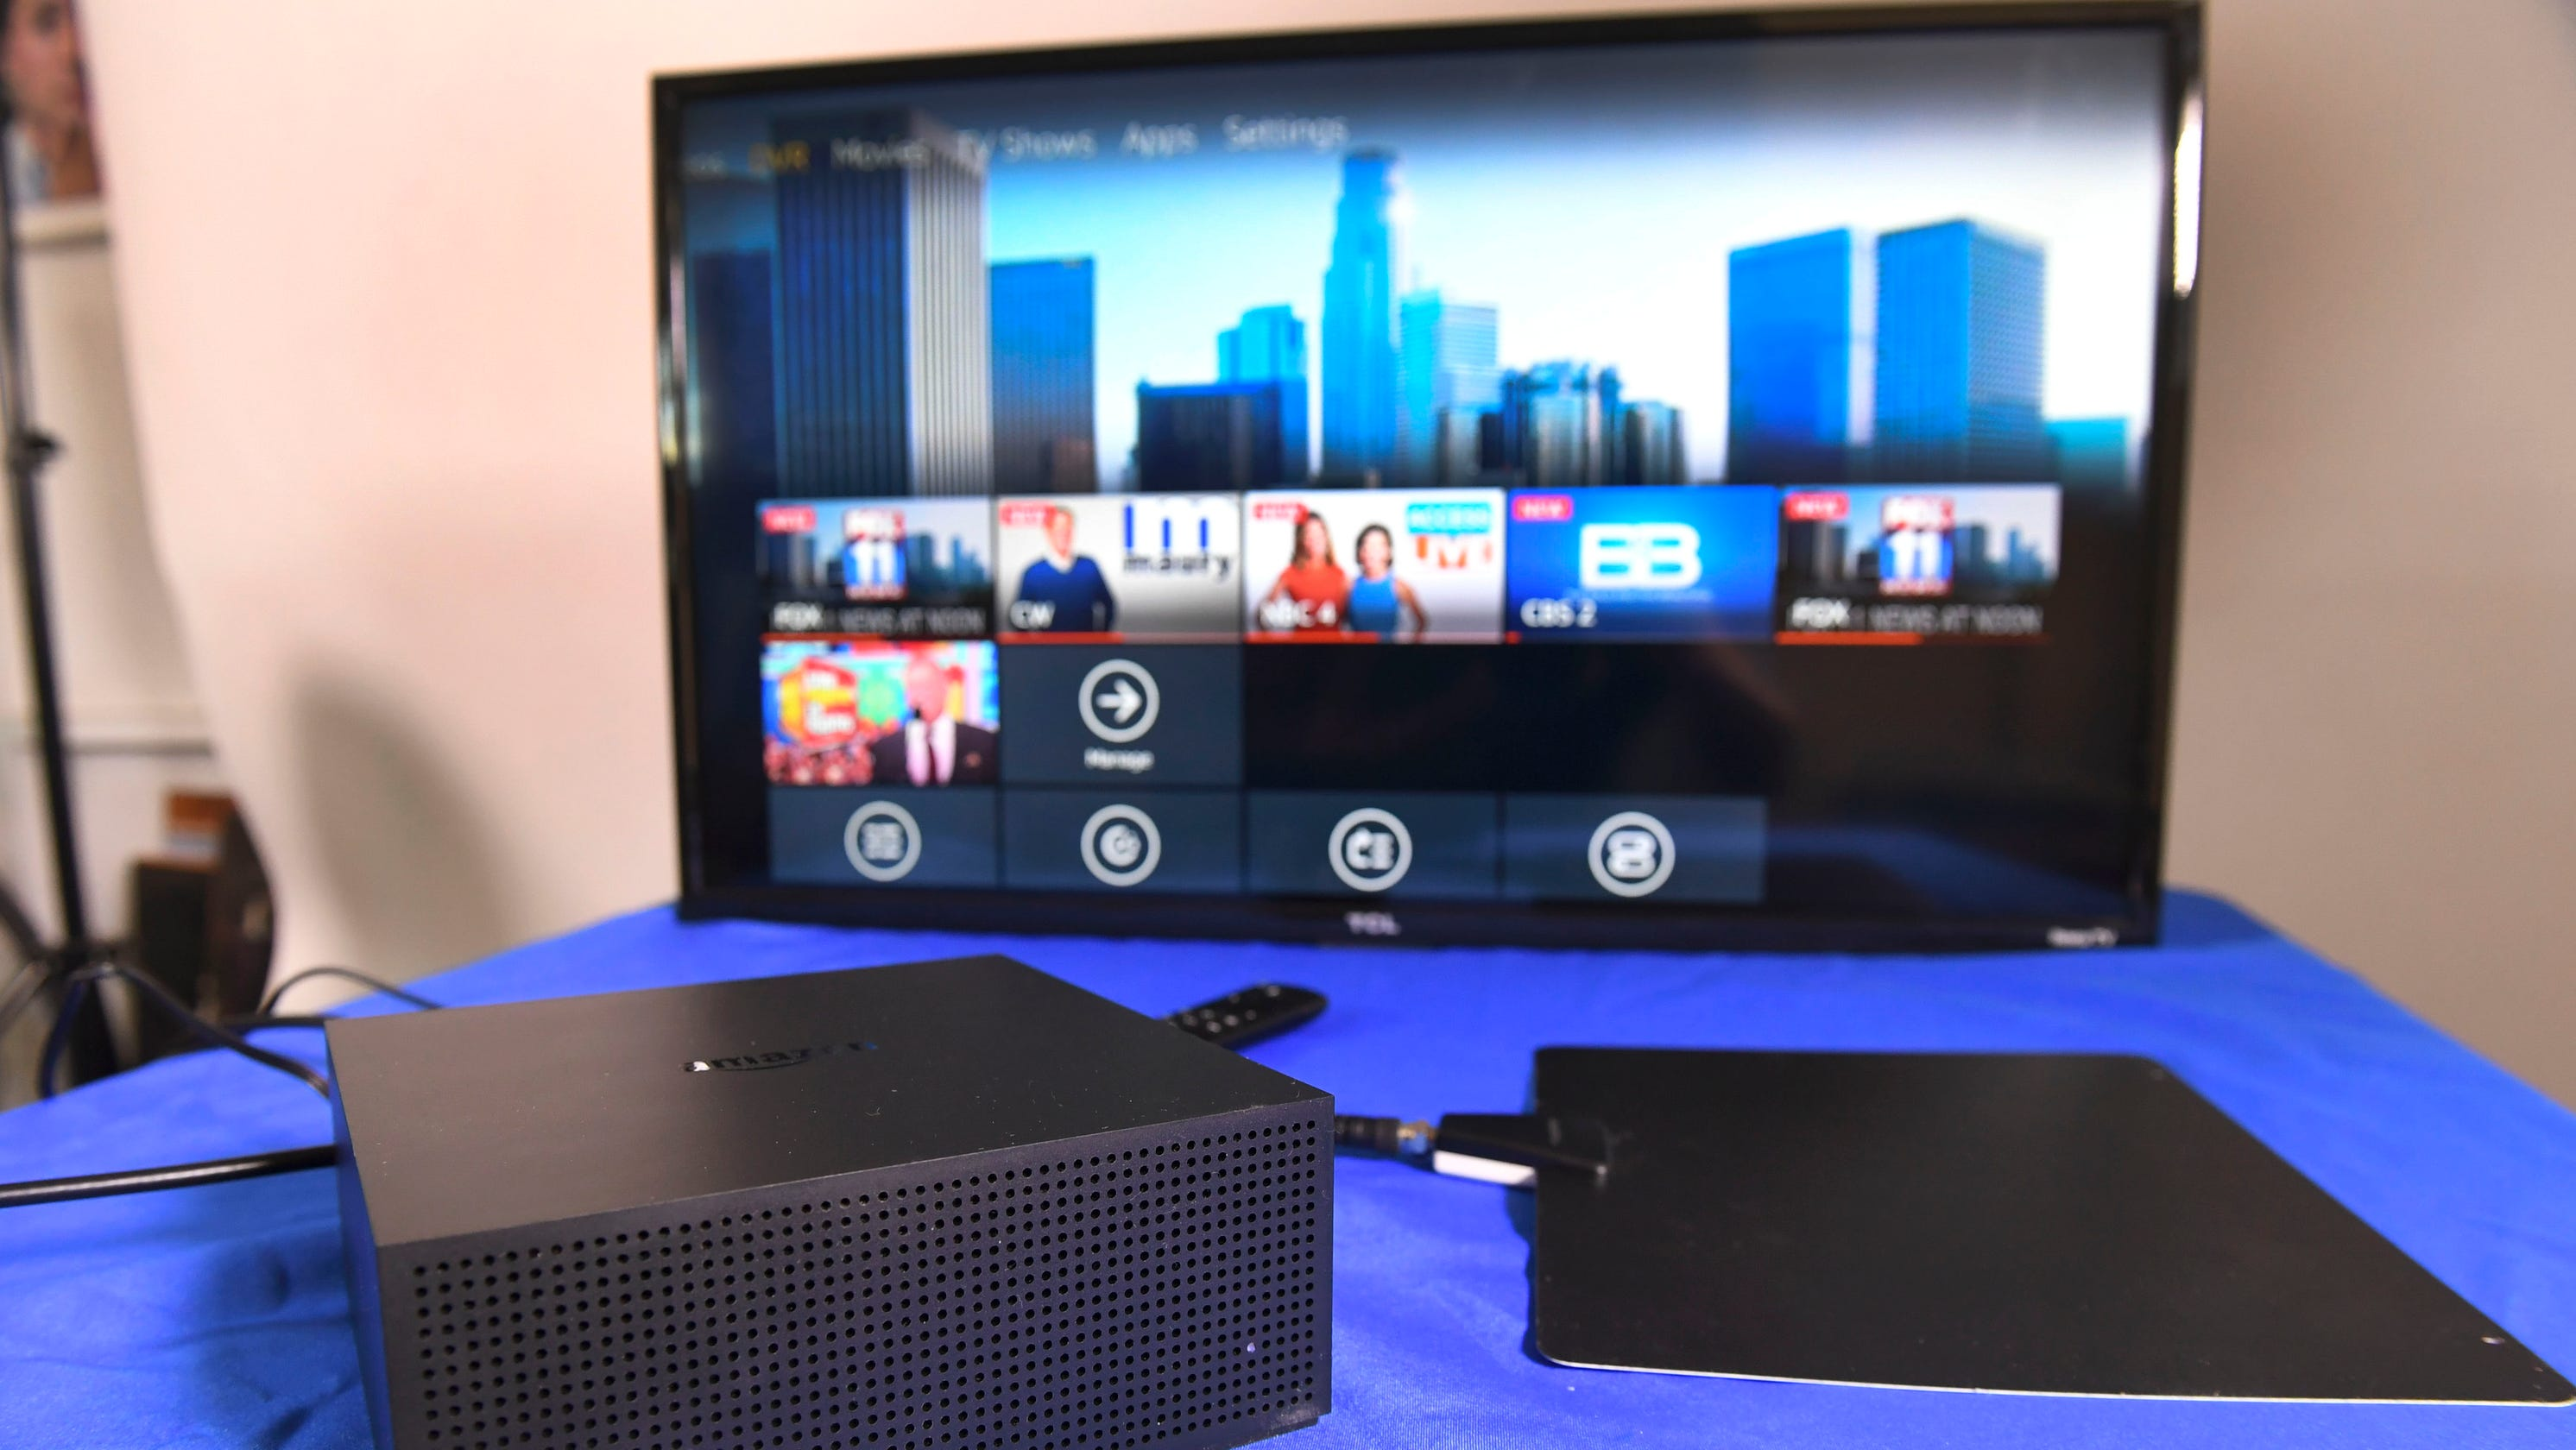 Amazon's Fire TV Recast DVR is a totally different way of